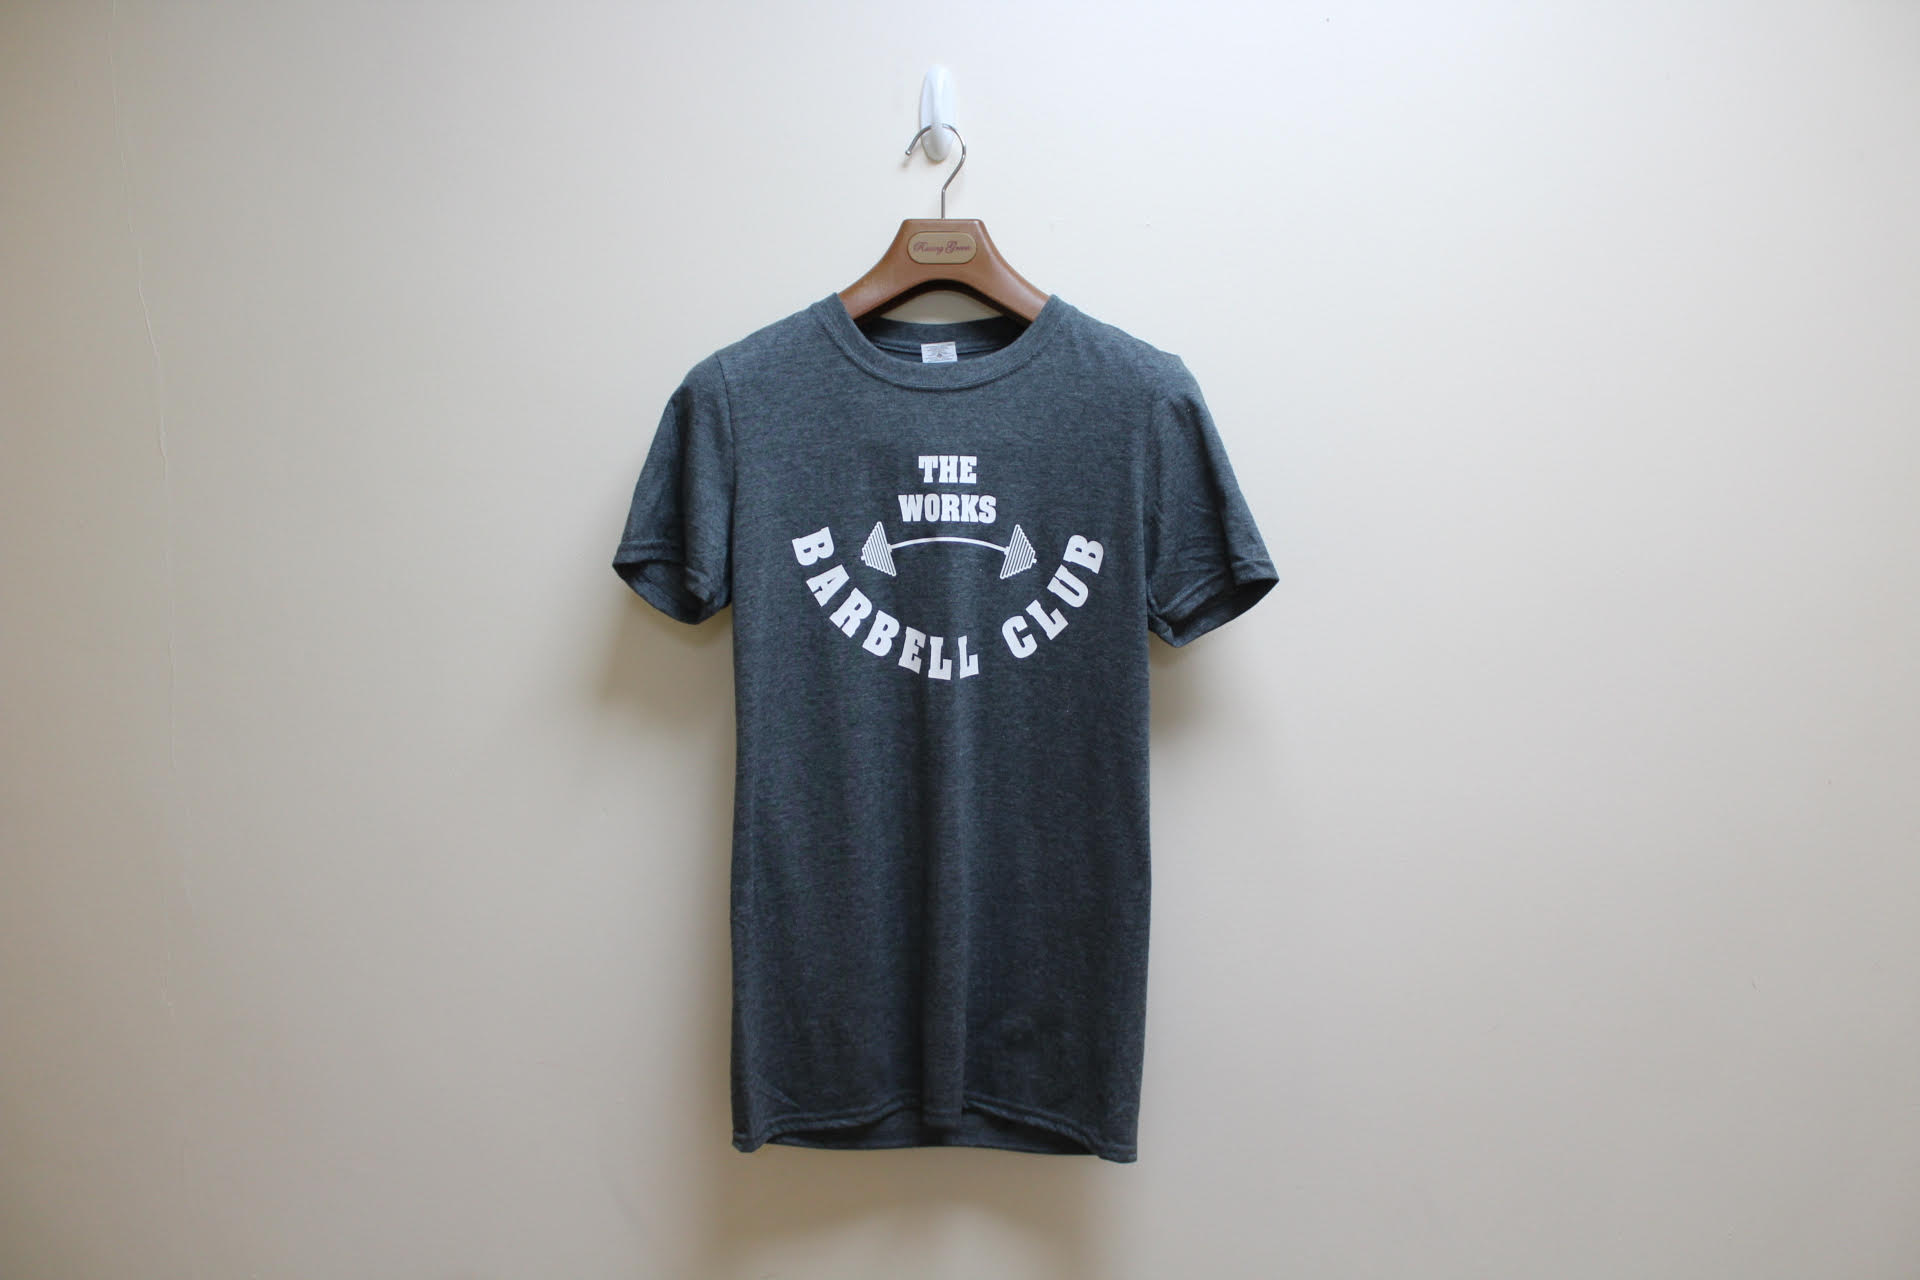 e7f342185615cd The Works Fitness Barbell Club Tshirt - The Works Fitness